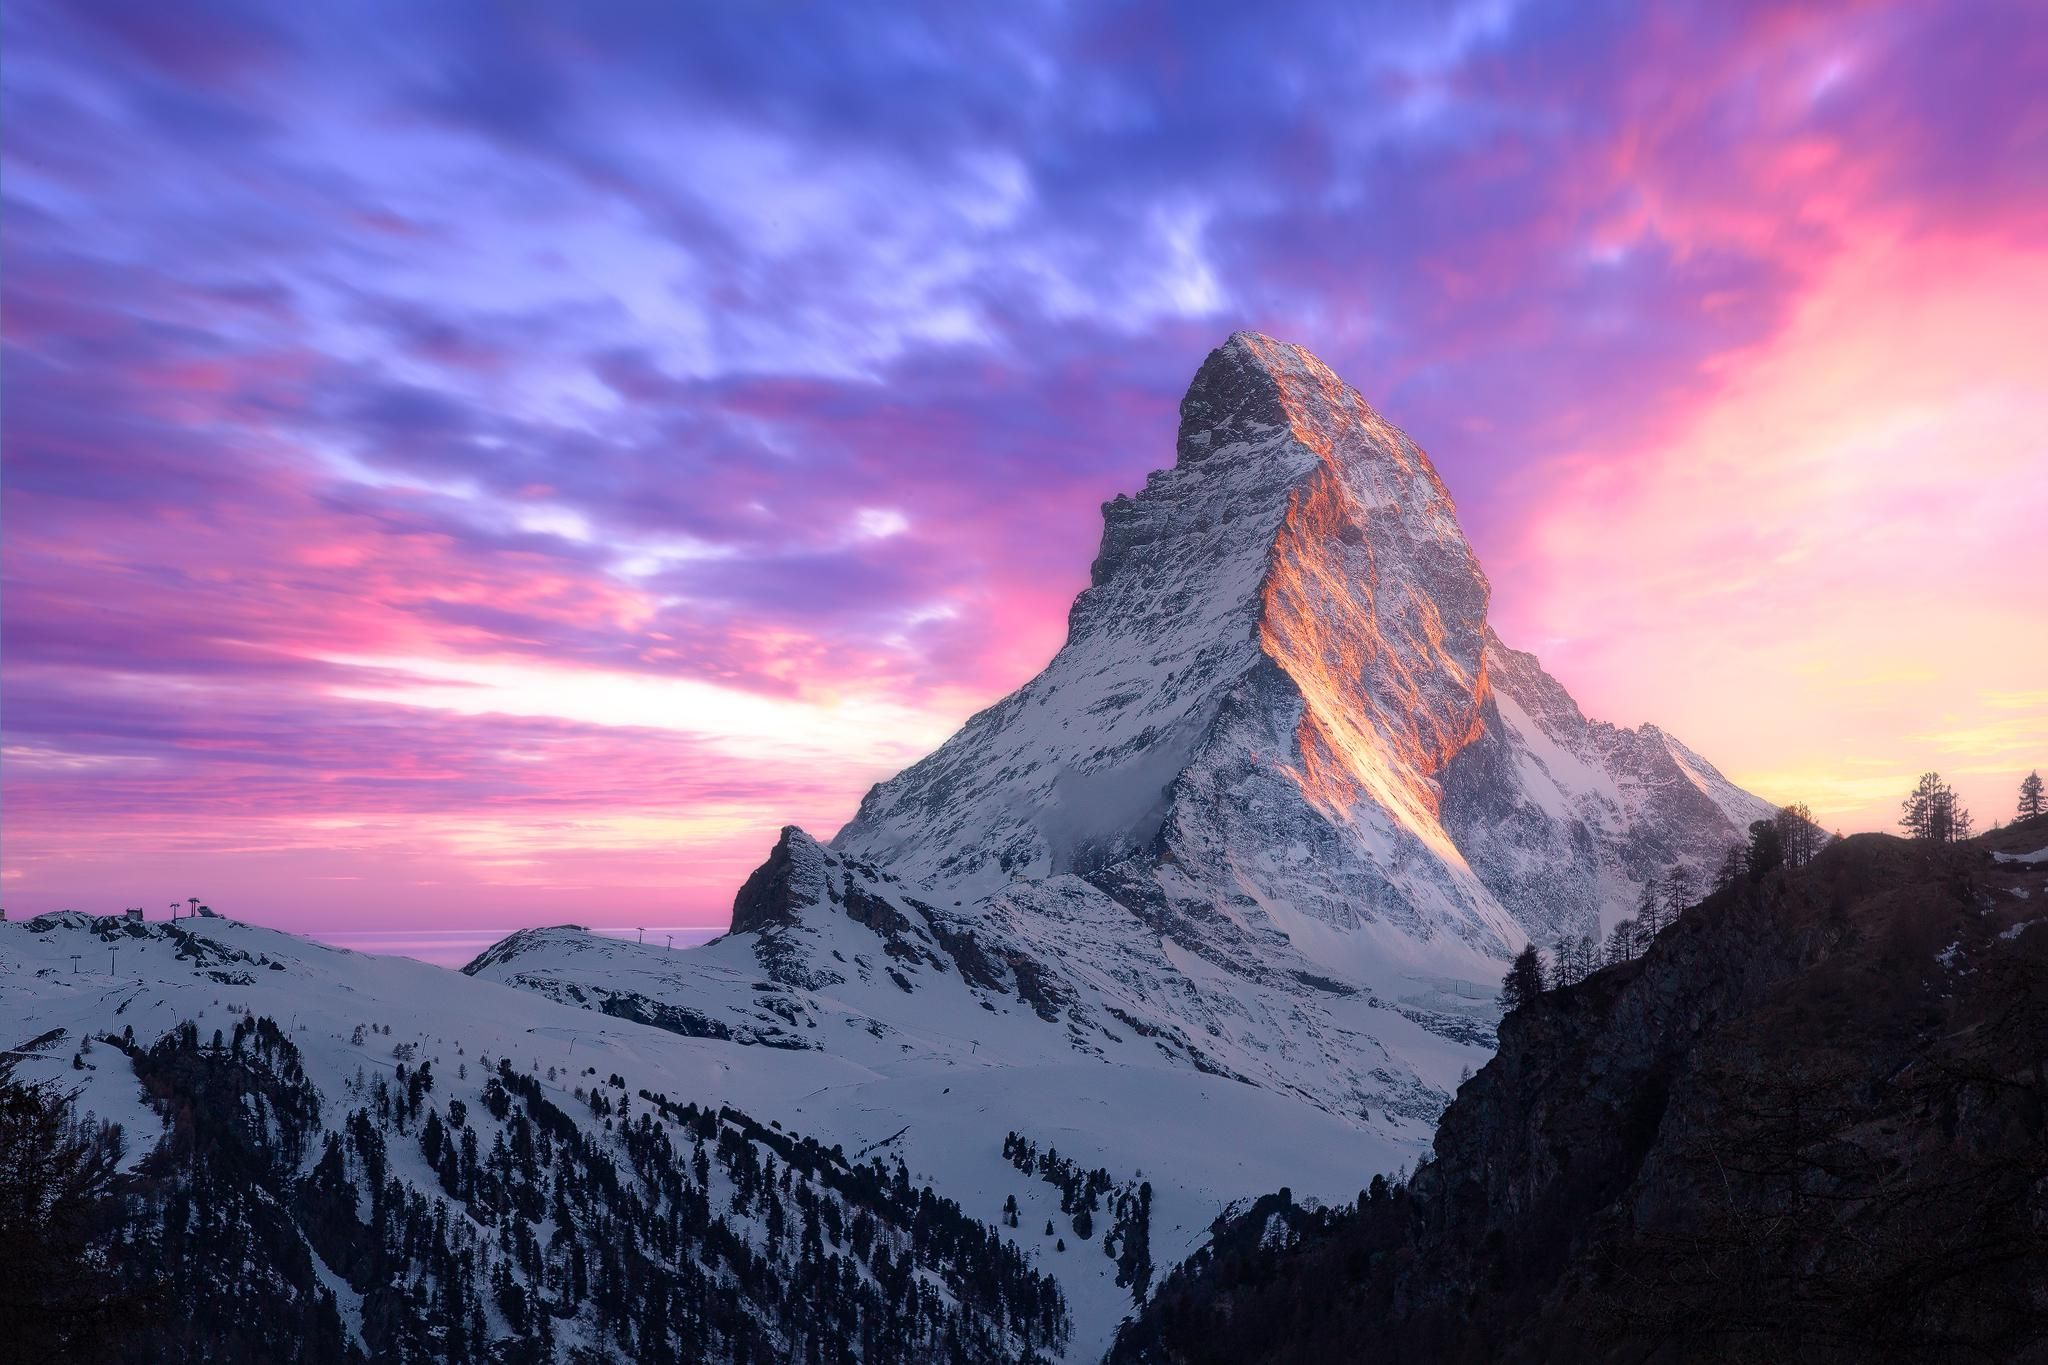 I Like This Mountain Picture Because It Is A Cool Looking Mountain And H In 2020 Mountain Sunset Landscapes Sunset Landscape Photography Mountain Landscape Photography